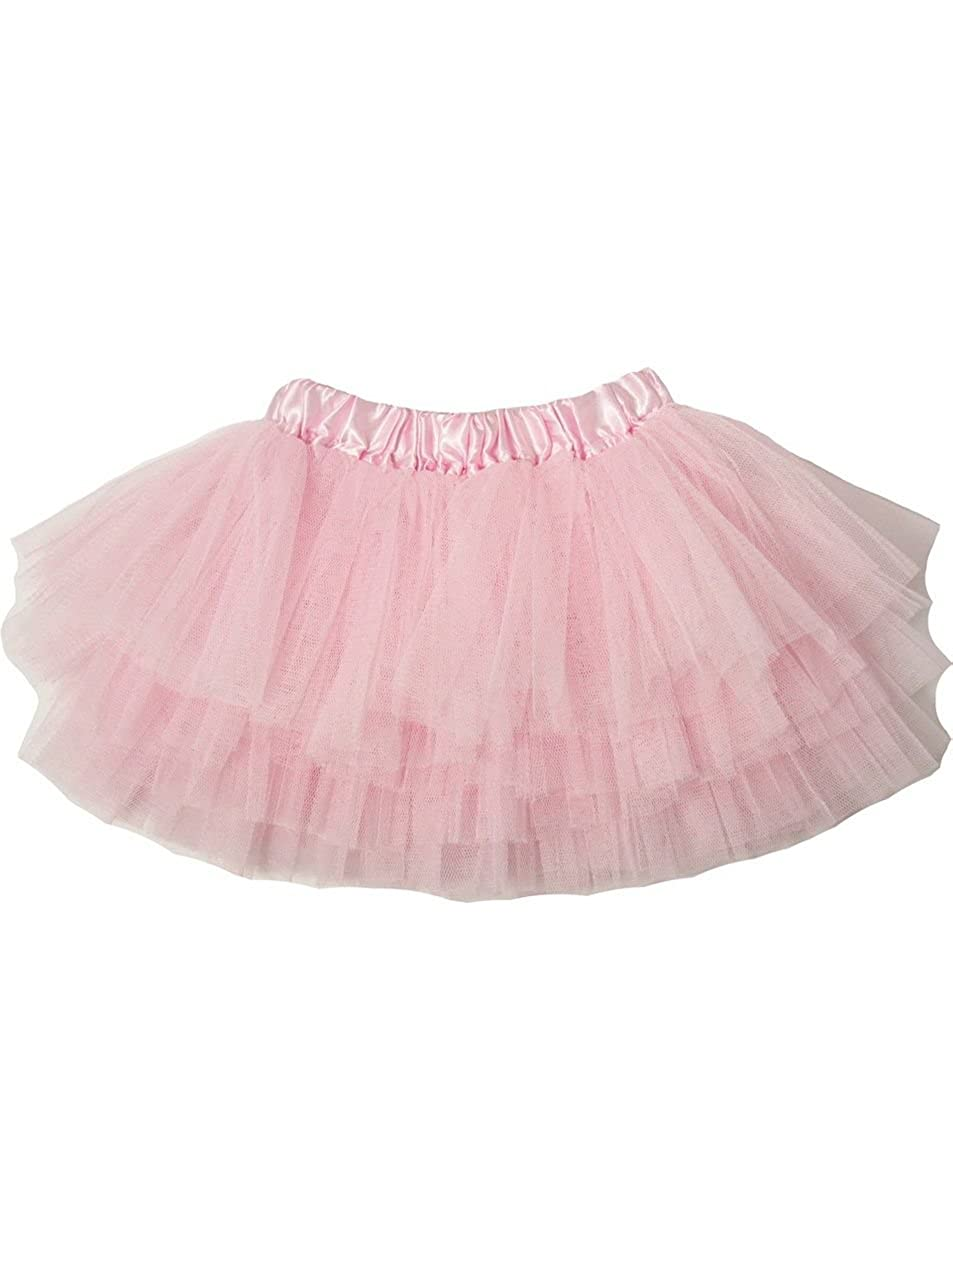 Little Girls Light Pink Satin Elastic Waist Triple Layer Ballet Tutu Skirt 2-8Y Dress Up Dreams Boutique